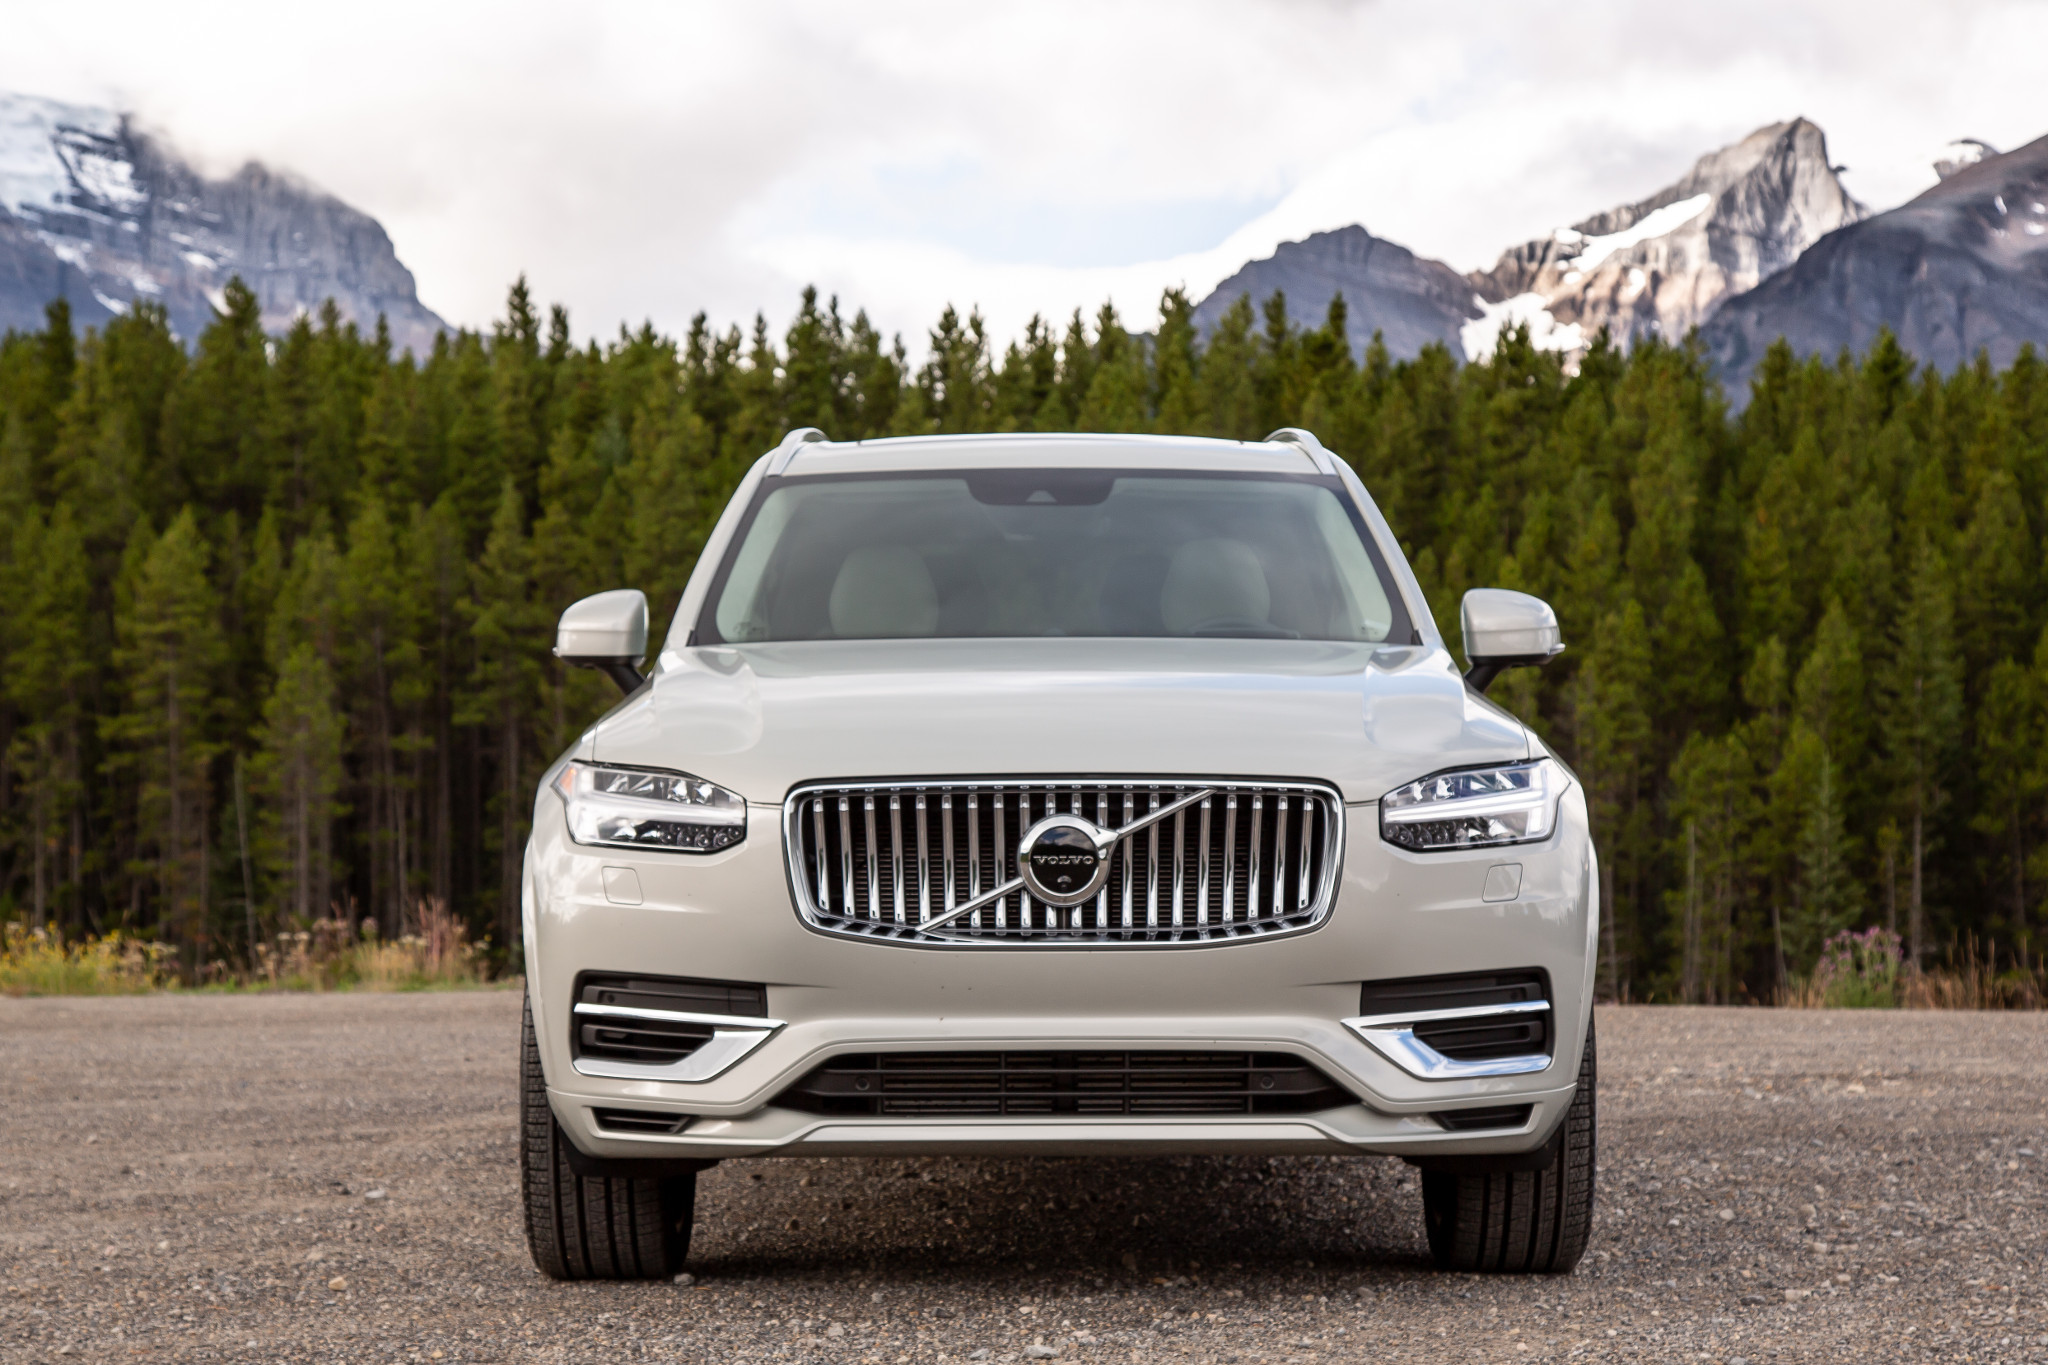 2020 Volvo XC90 Pros and Cons: 6 Things We Like (and 3 Not So Much)